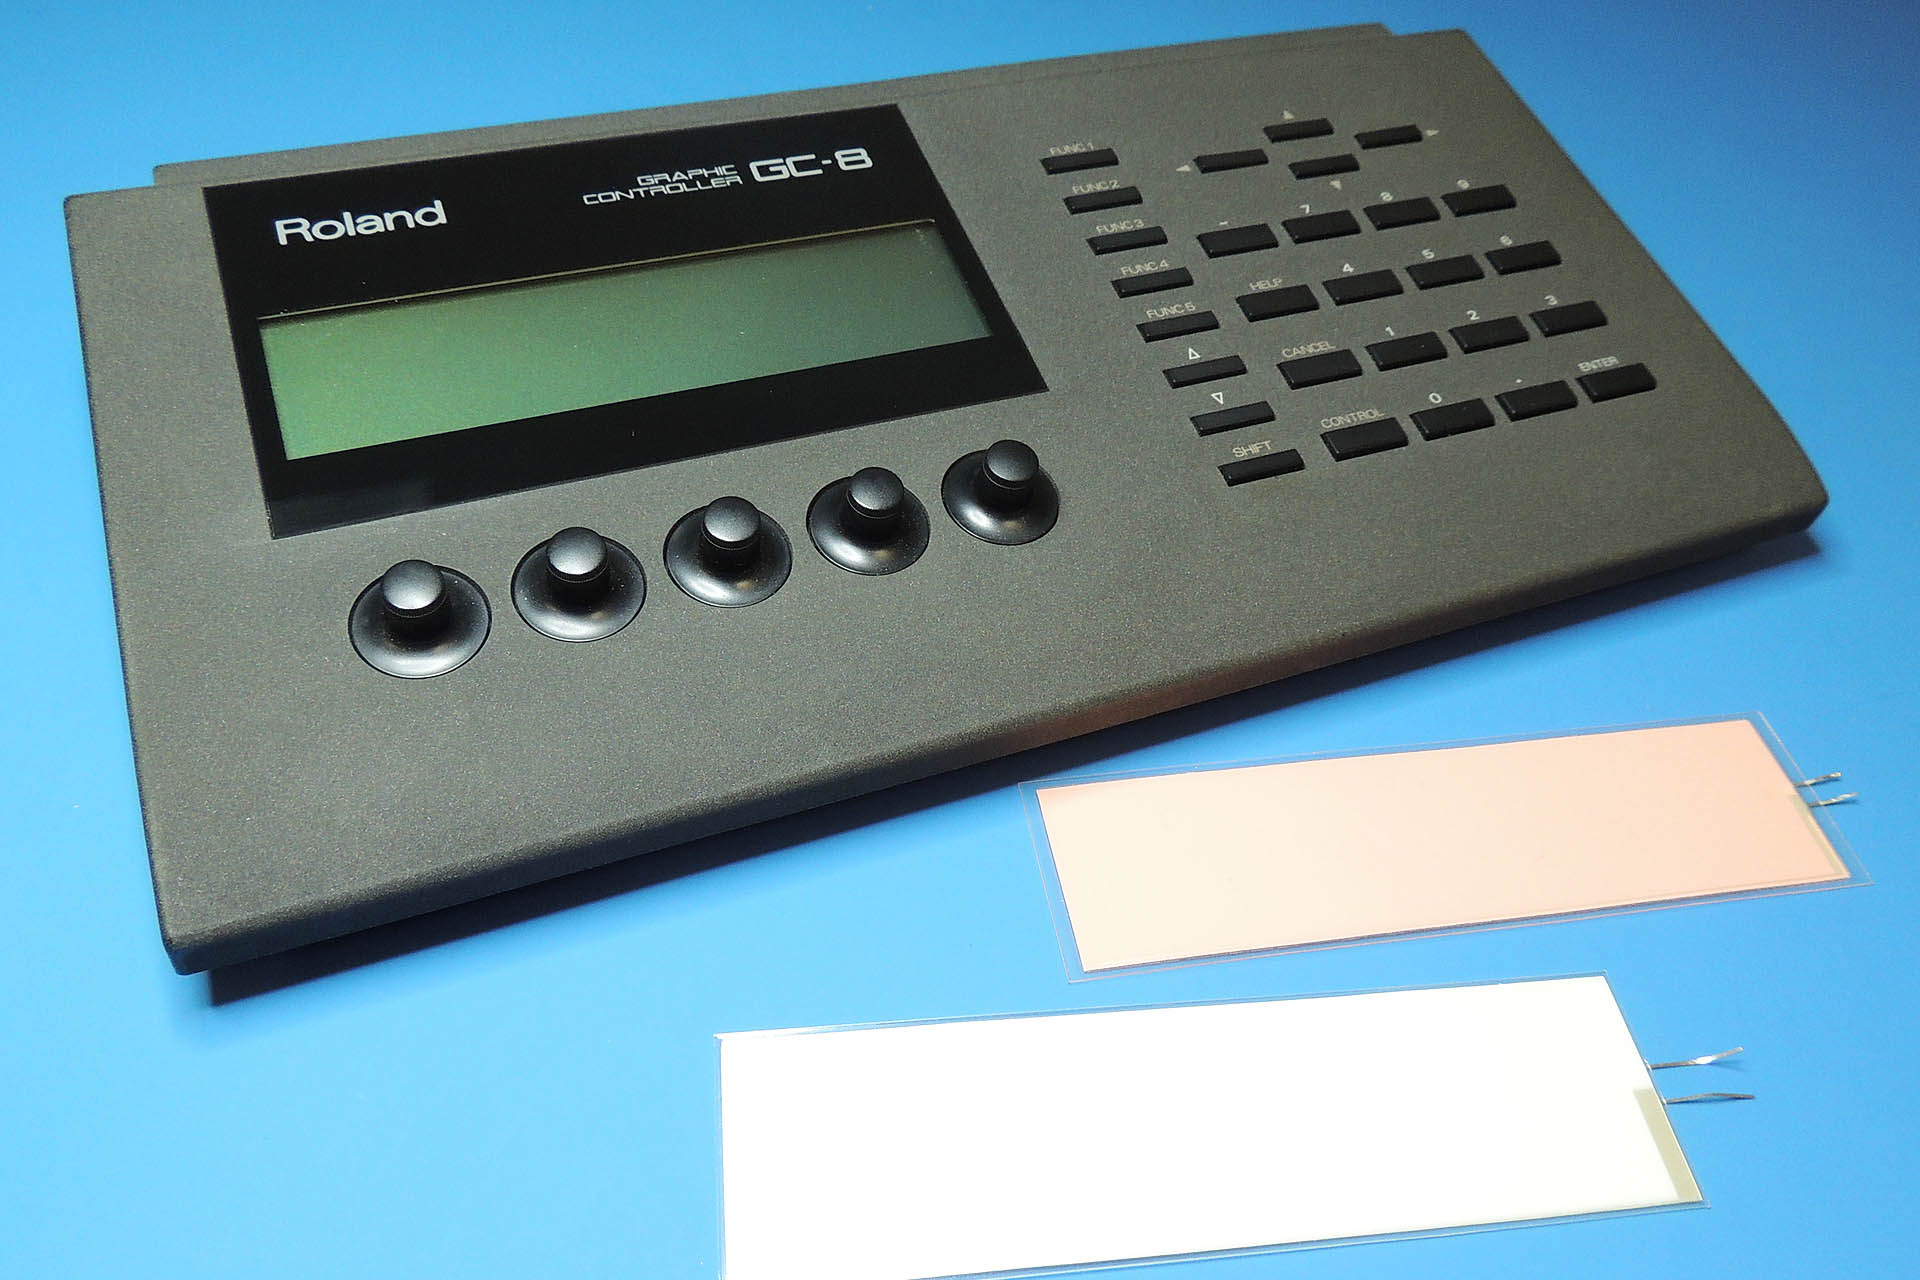 Roland GC-8 LCD Backilight Repalcement